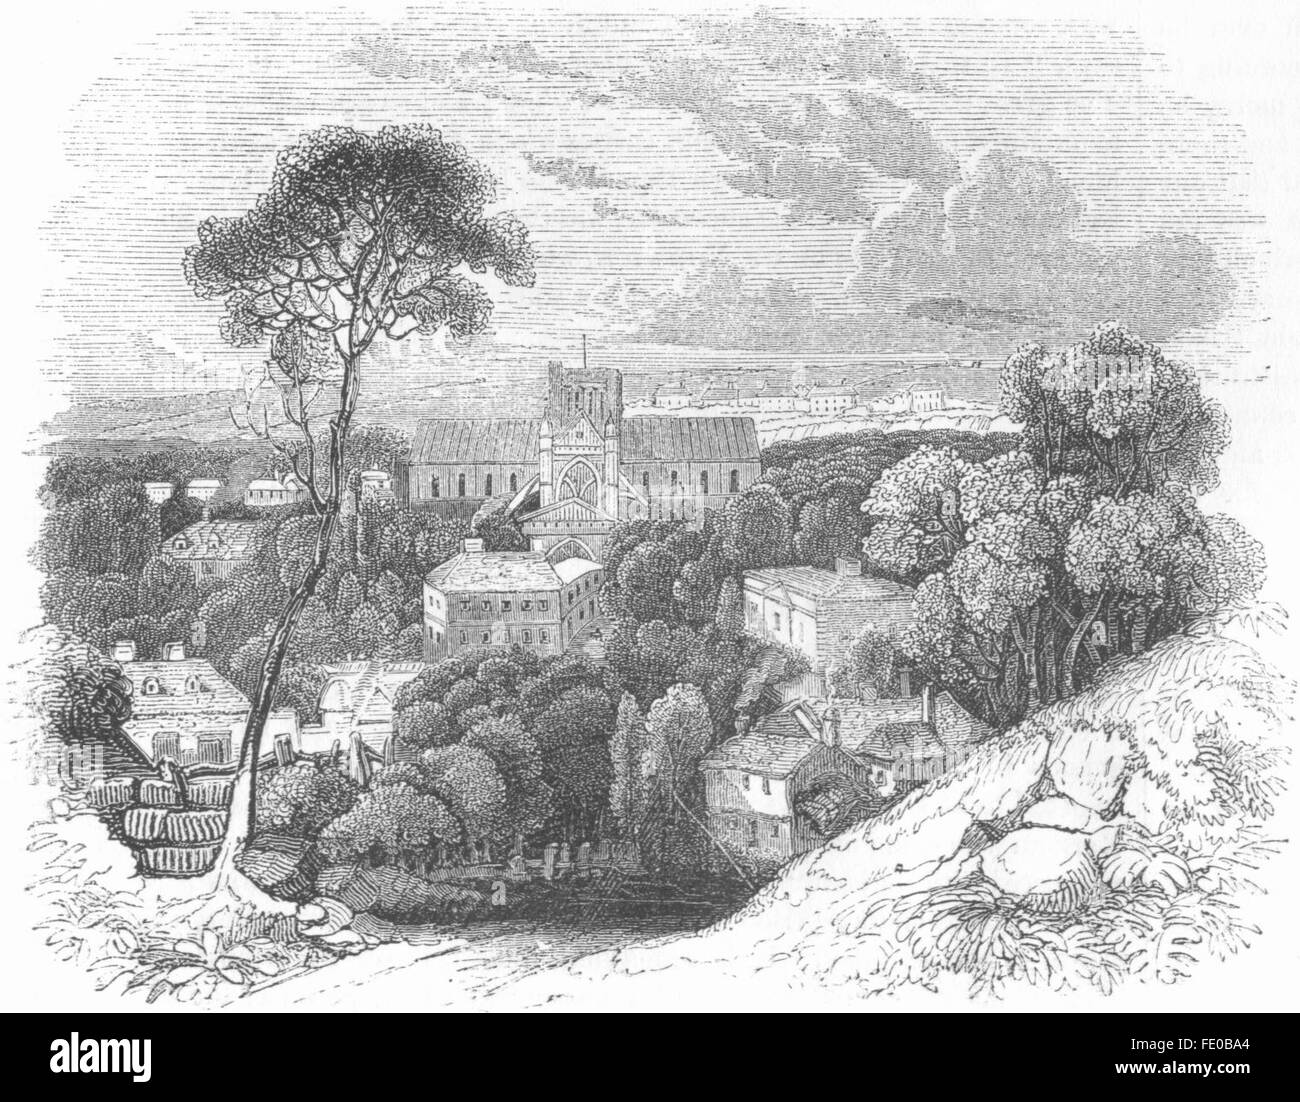 HANTS: Winchester, antique print 1845 - Stock Image